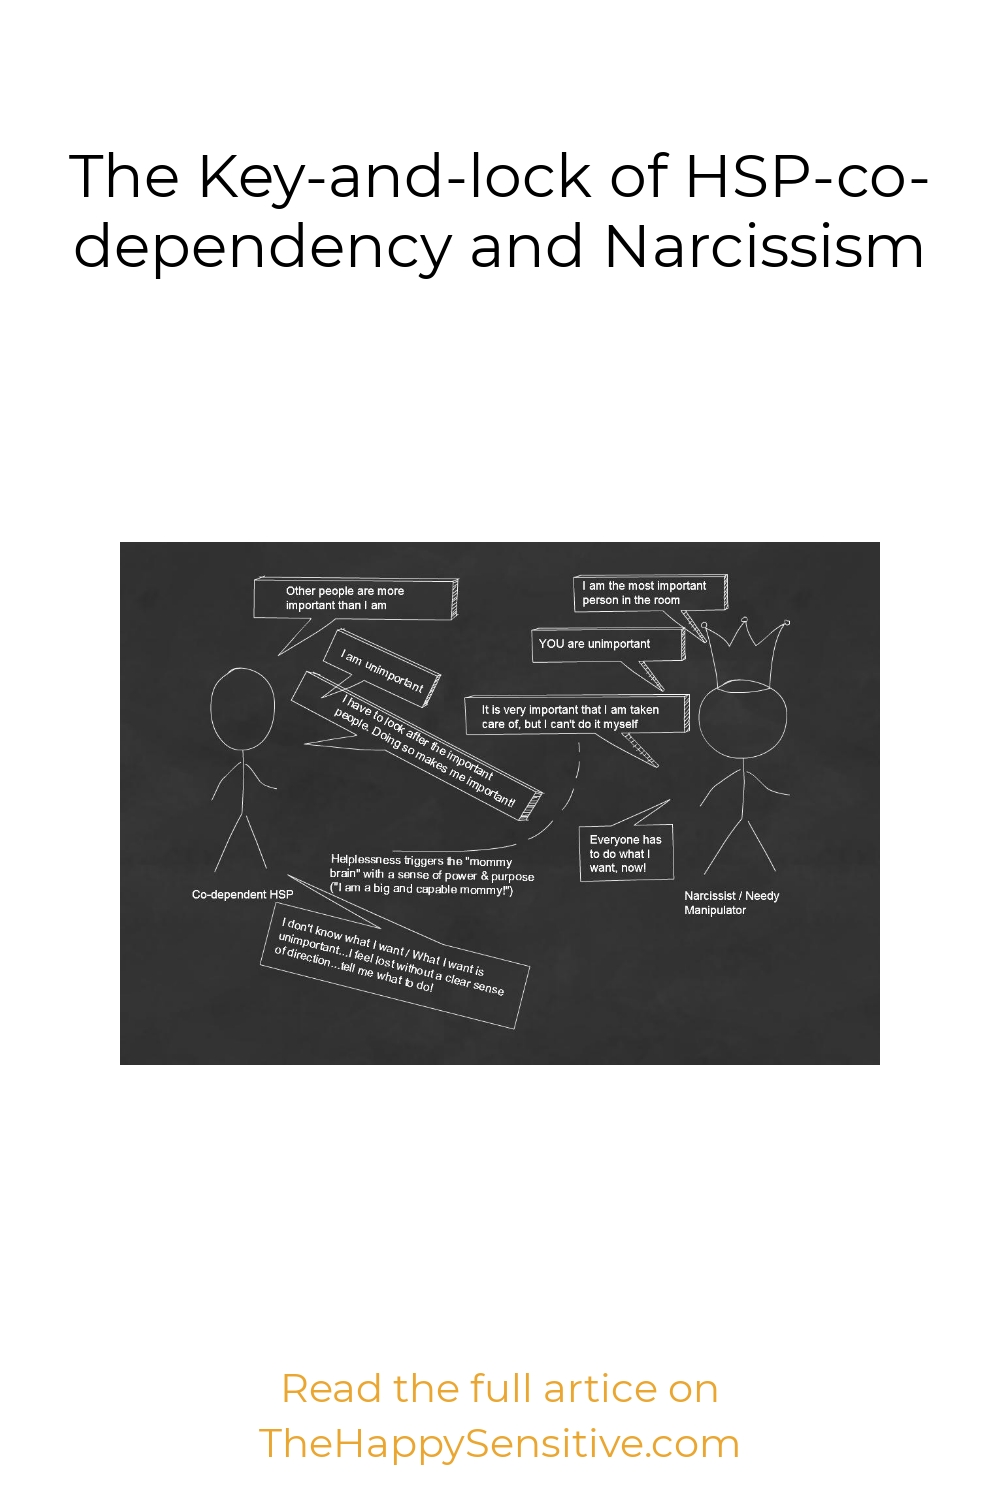 The Key-and-lock of HSP-co-dependency and Narcissism